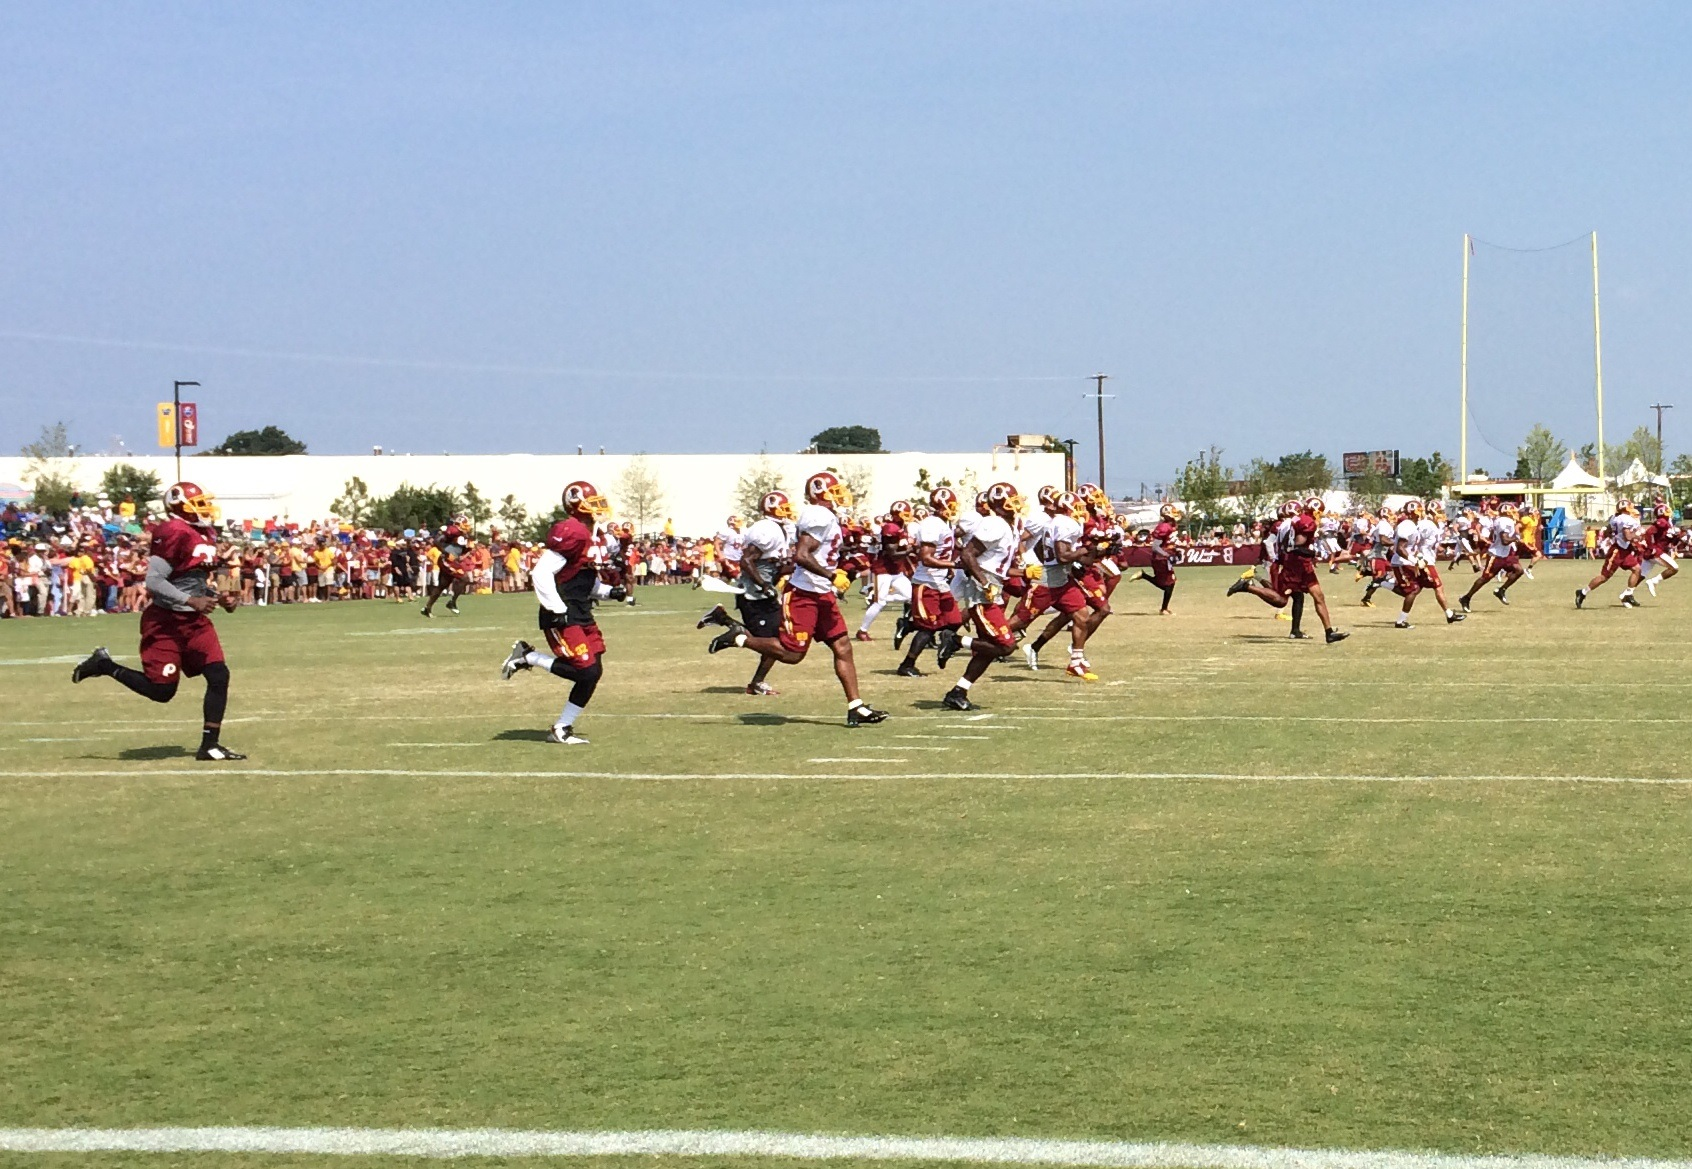 Early finish on day 7 of Redskins Camp